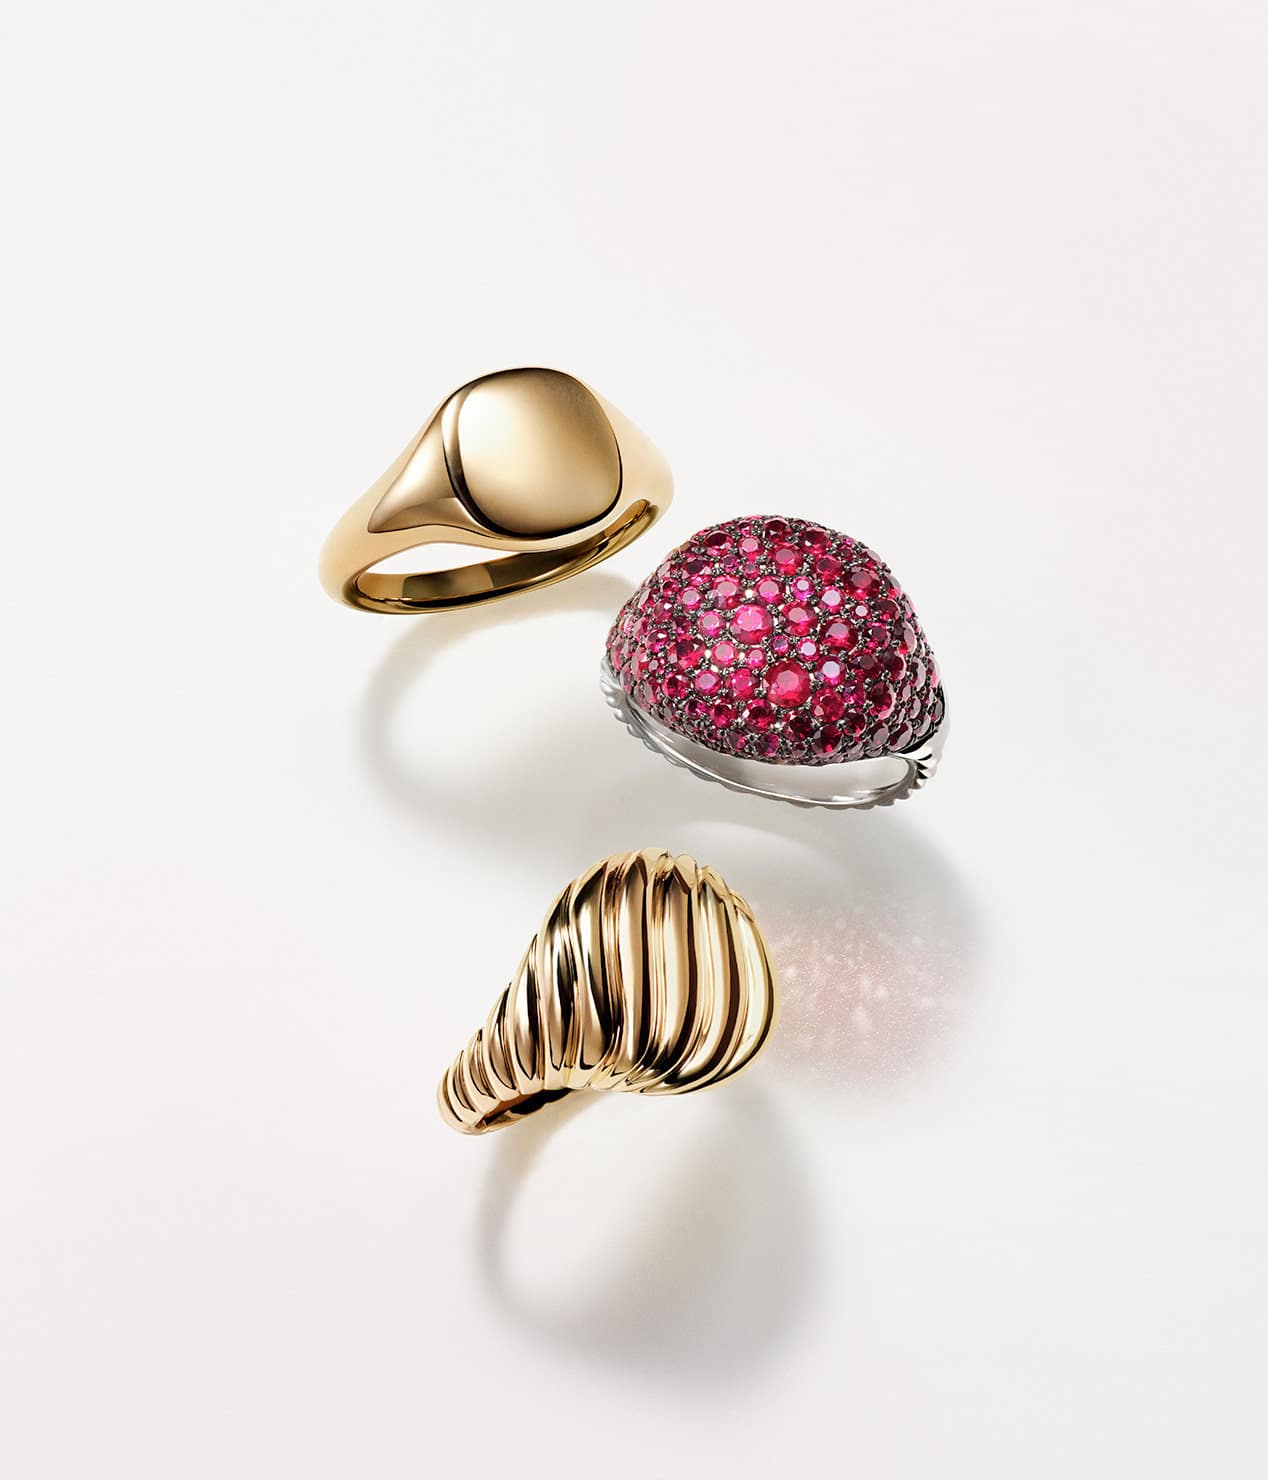 A color photograph shows three David Yurman pinky rings placed atop a white background with soft shadows. Two rings are crafted from smooth or Cabled 18K yellow gold. The final ring is crafted from 18K white gold with pavé rubies.